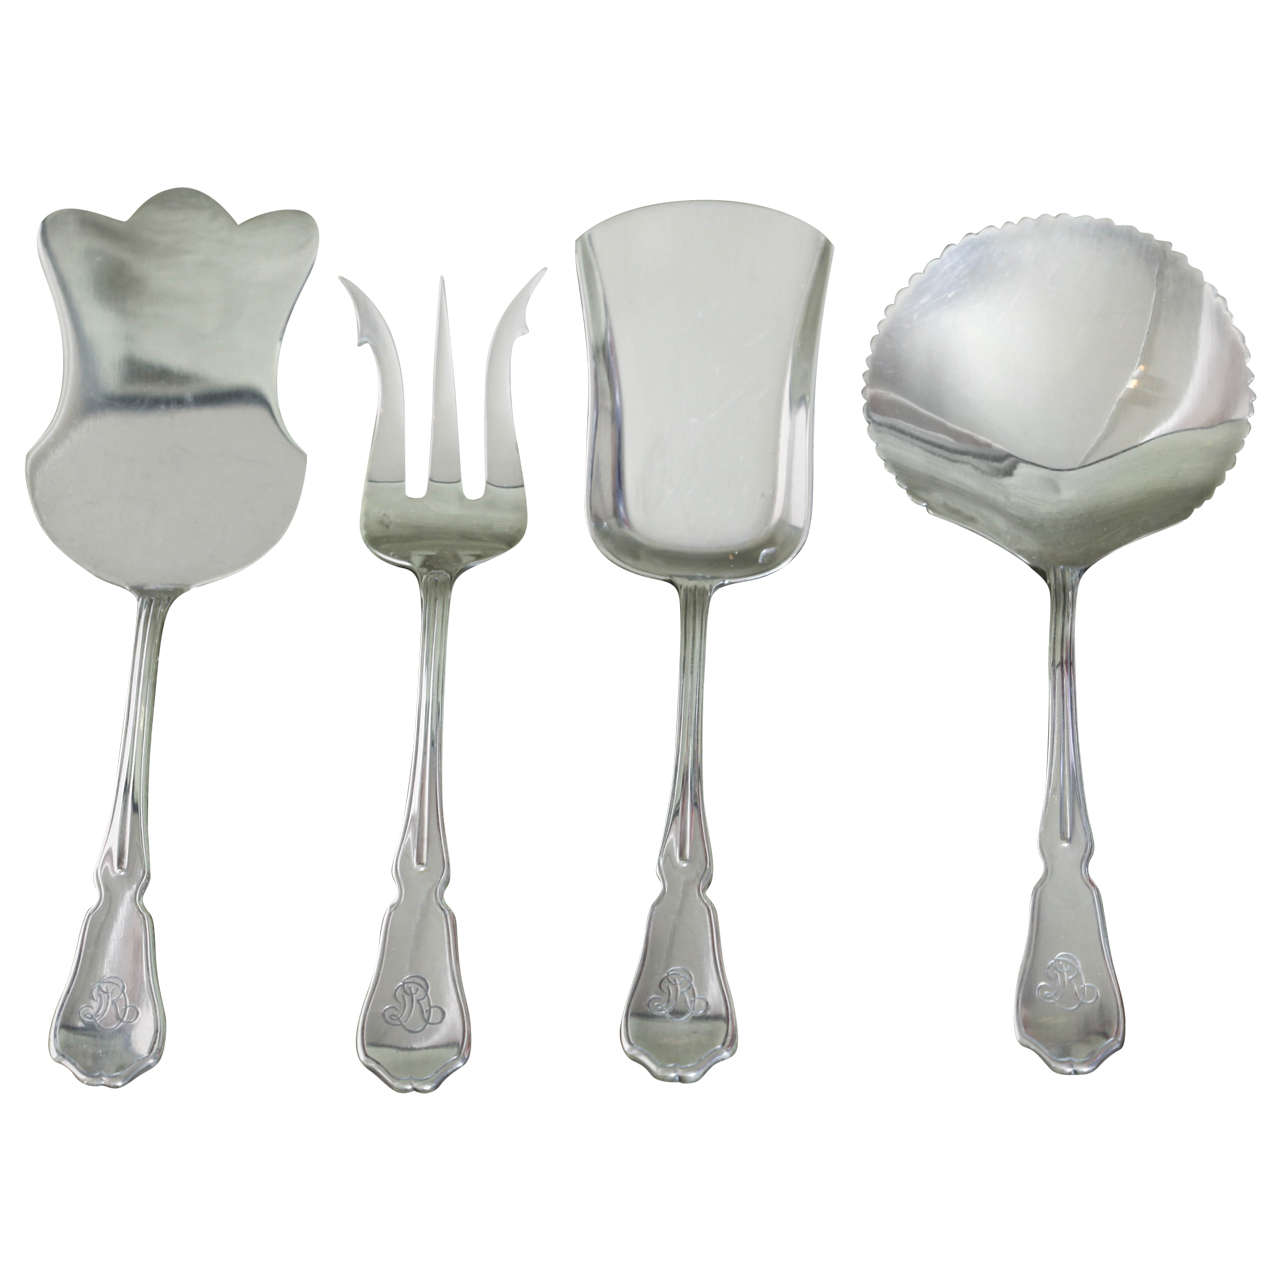 G. Keller Four-Piece Sterling Silver Hors D'oeuvres Set in Fitted Box For Sale